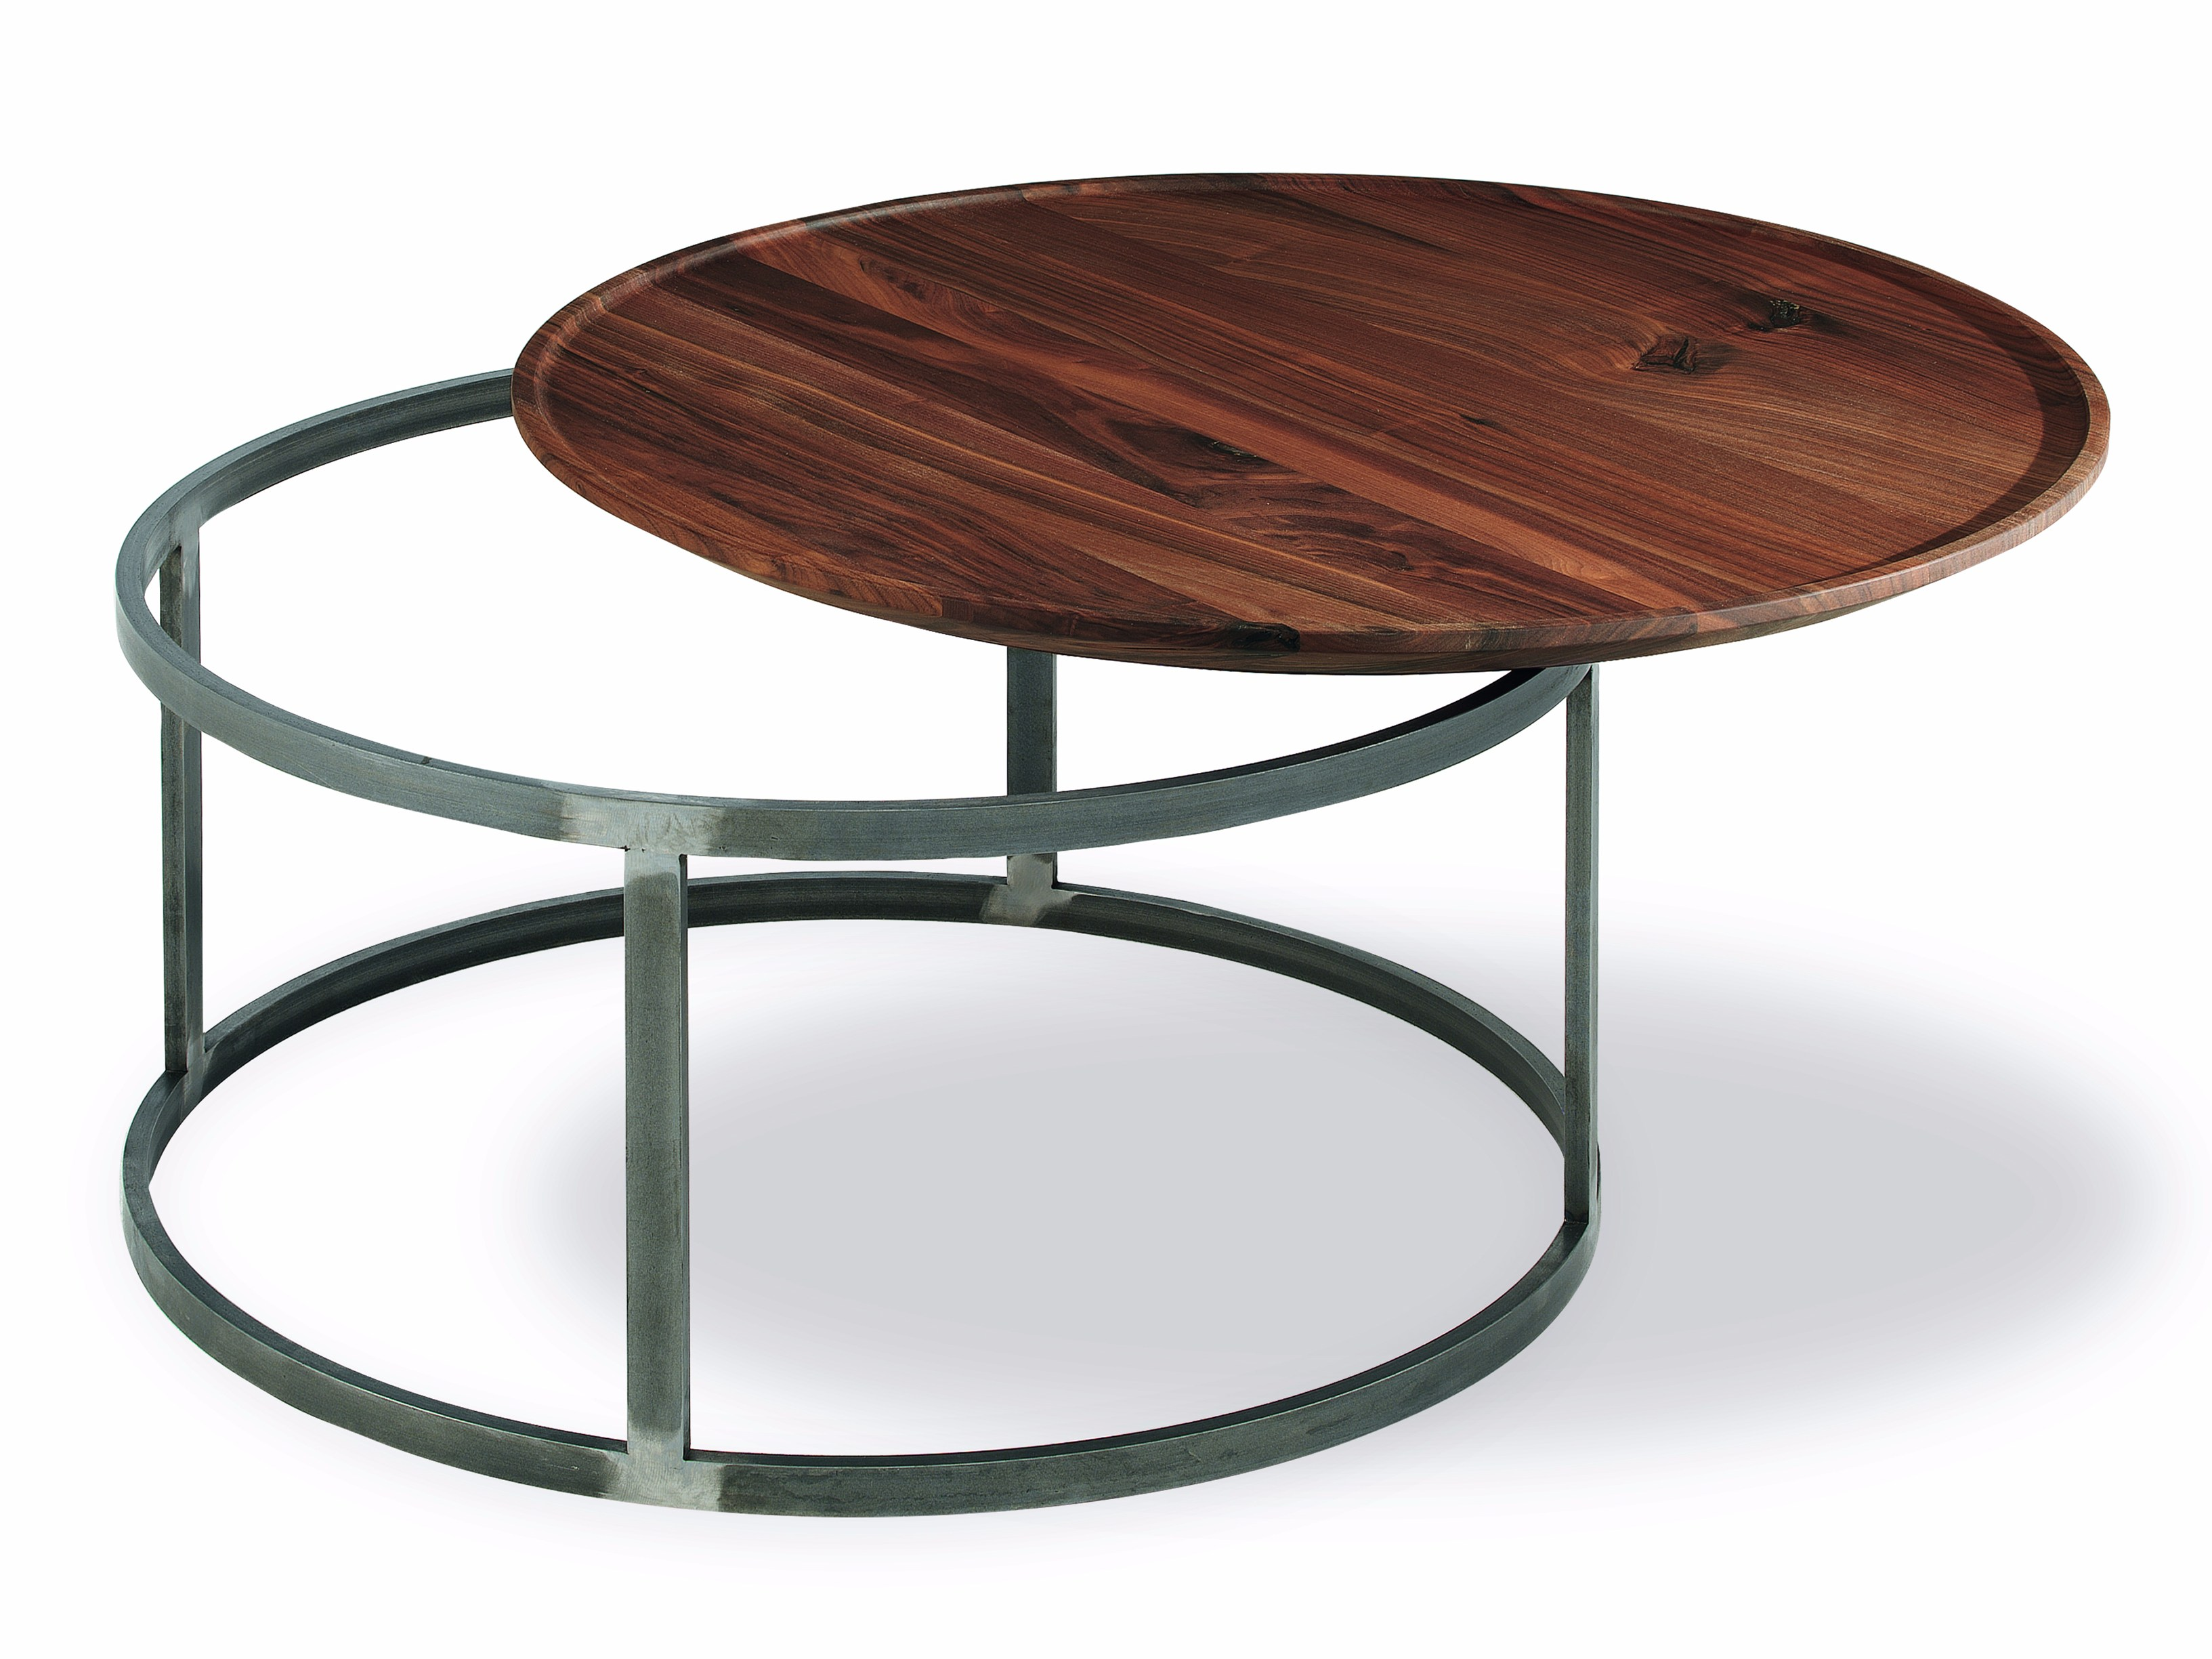 Low wooden coffee table TOBI 3 By Riva 1920 design Terry Dwan